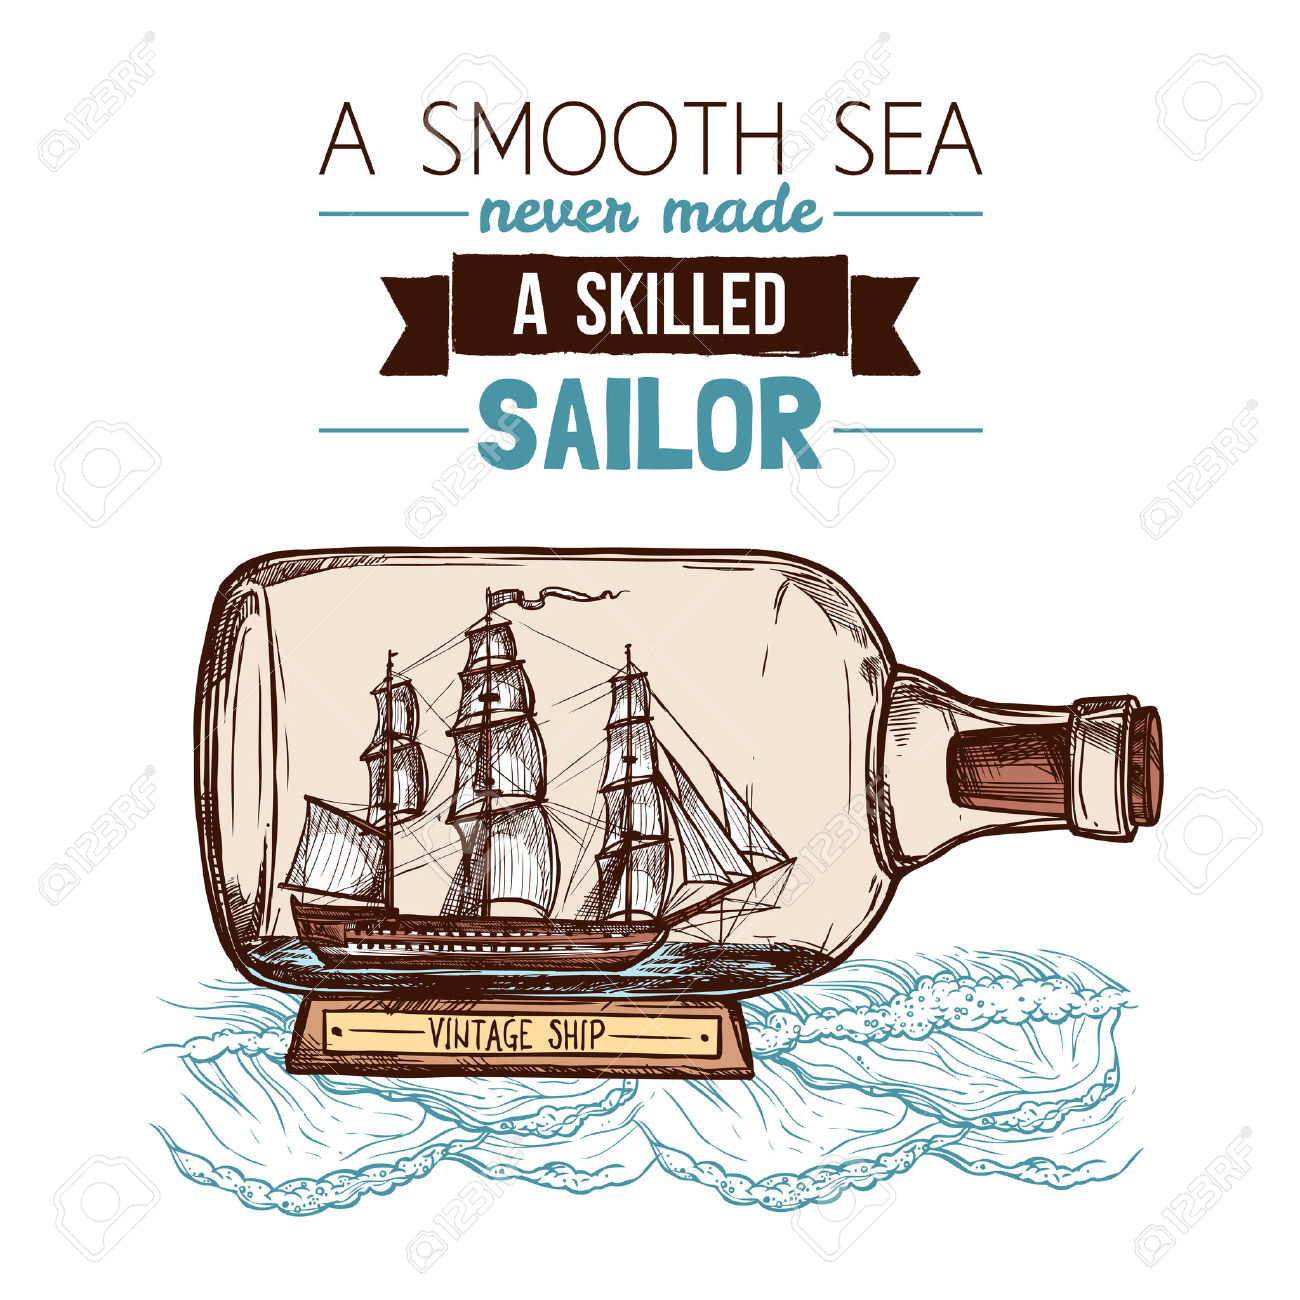 Old Vintage Sailboat Or Ship Model In Glass Bottle With Text.